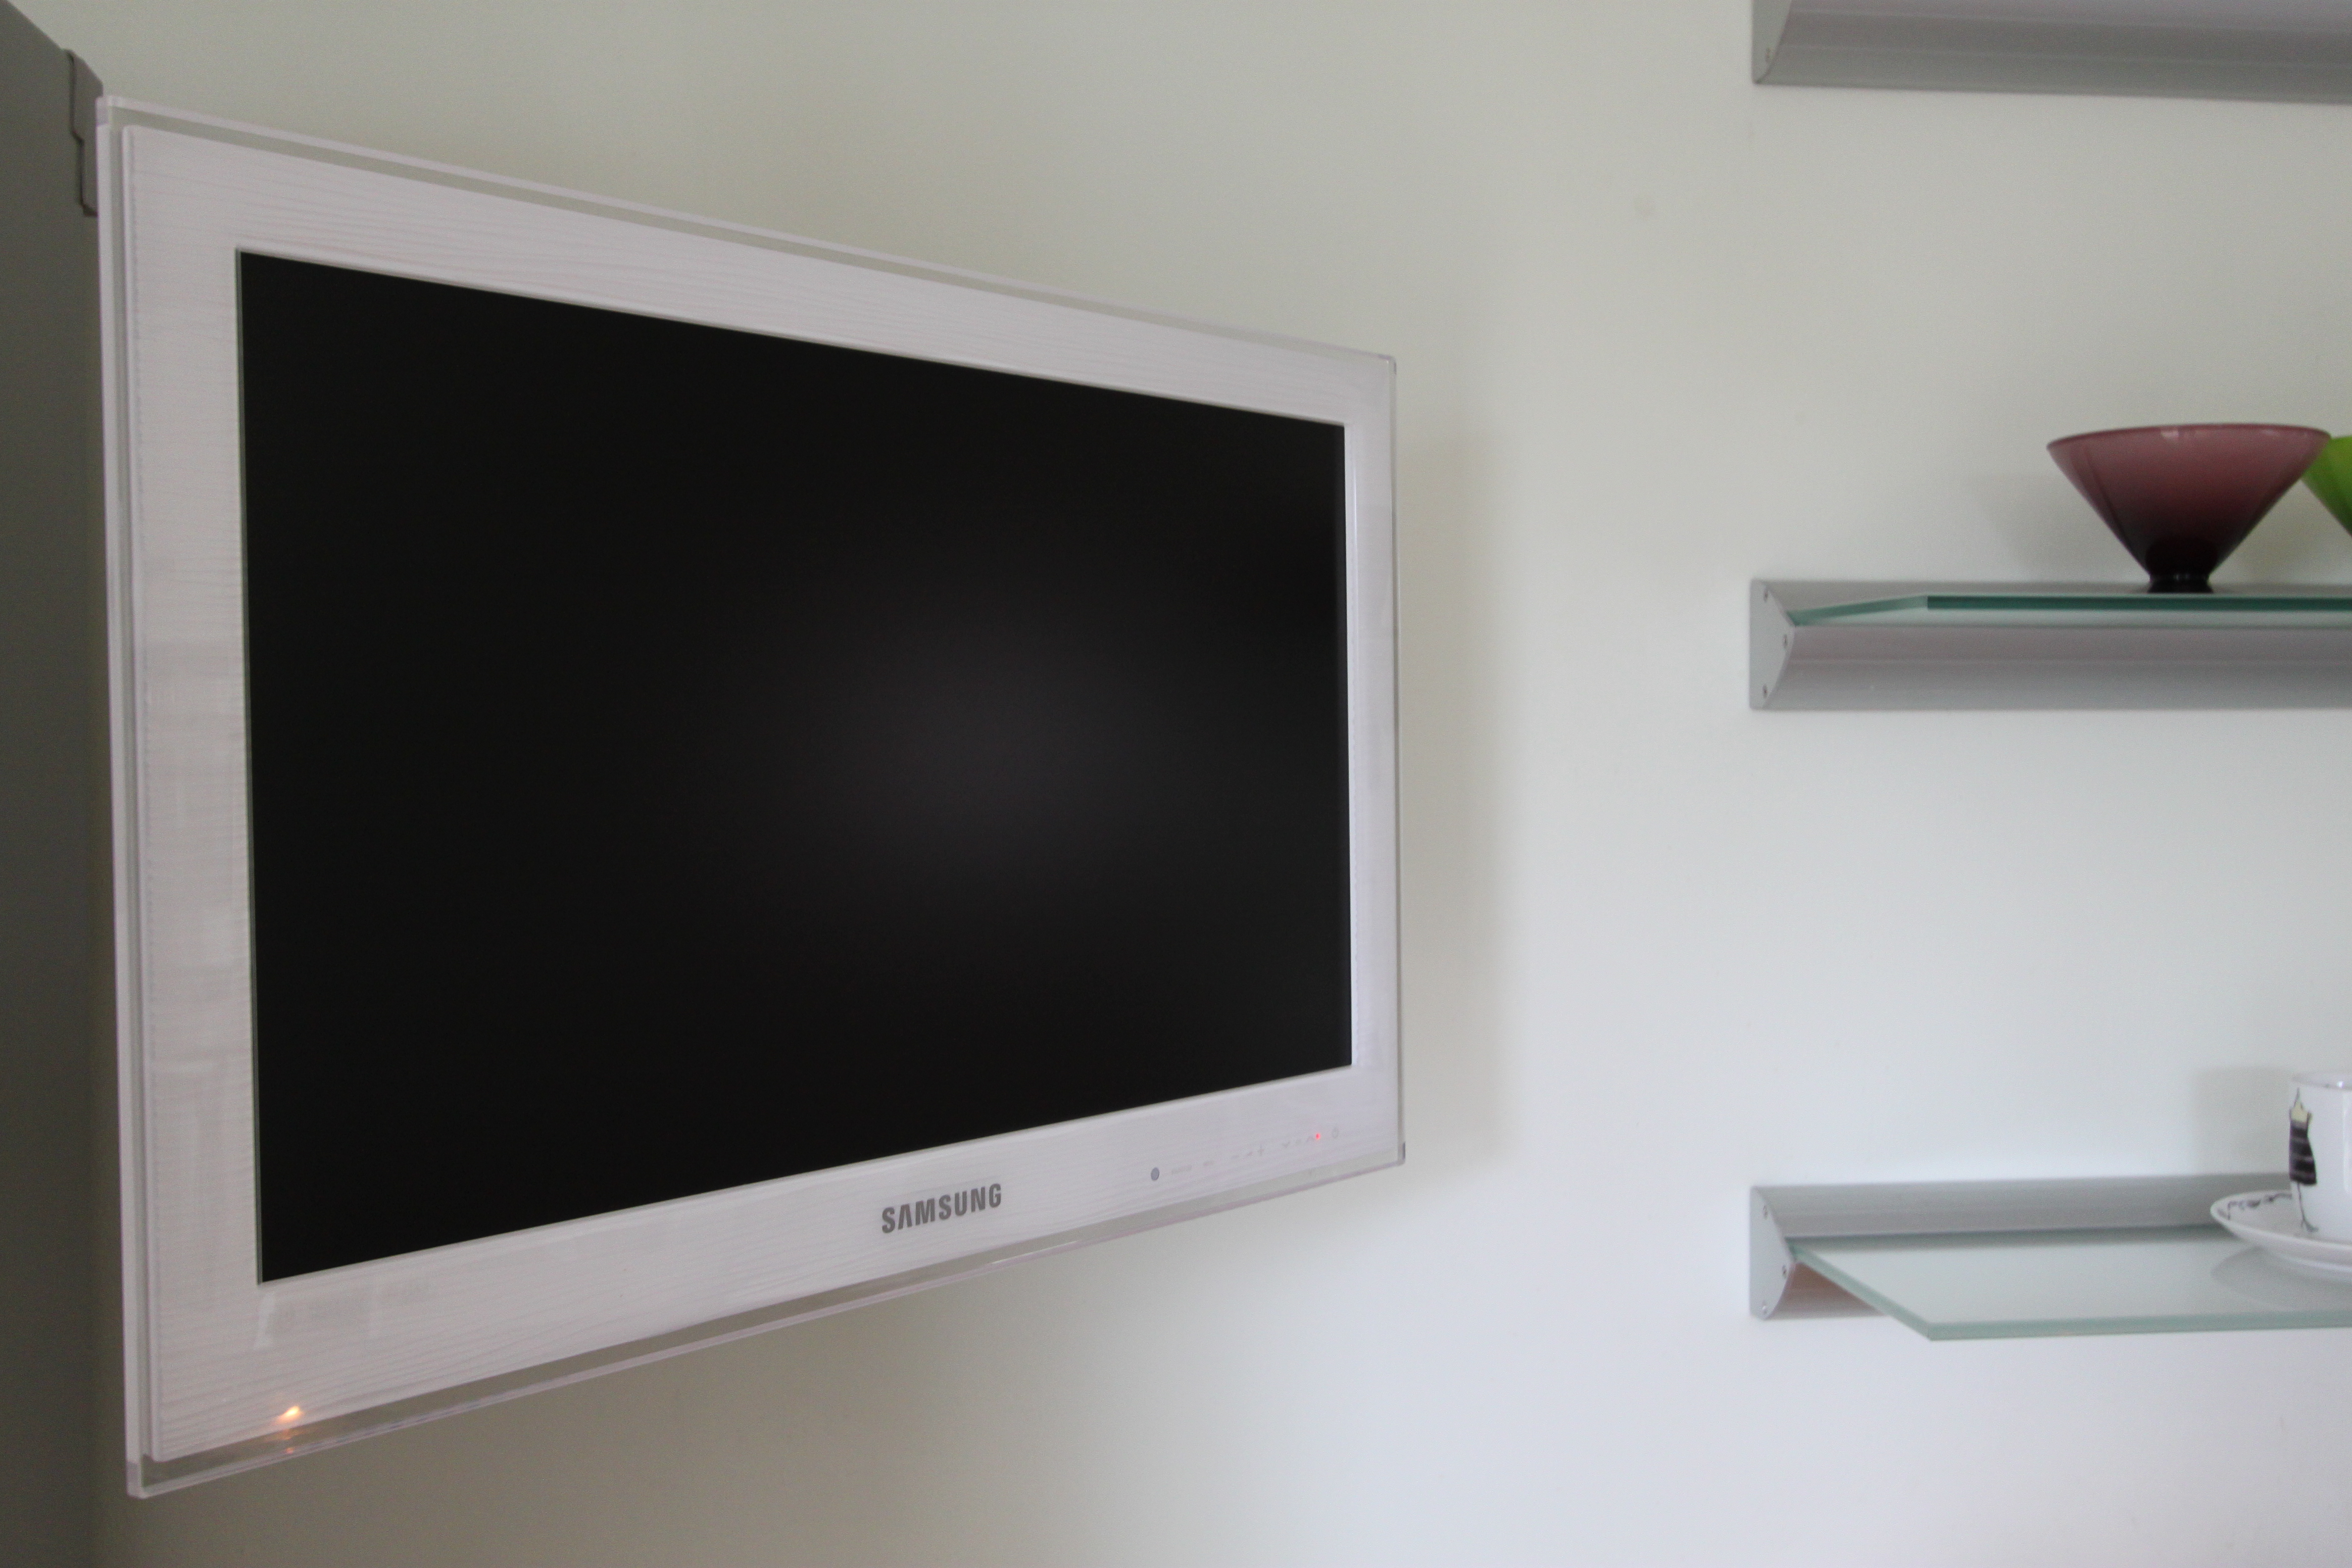 Wall Led Tv : Plasma Tv On Wall Samsung led 26 tv led tv wall mount. judged.co